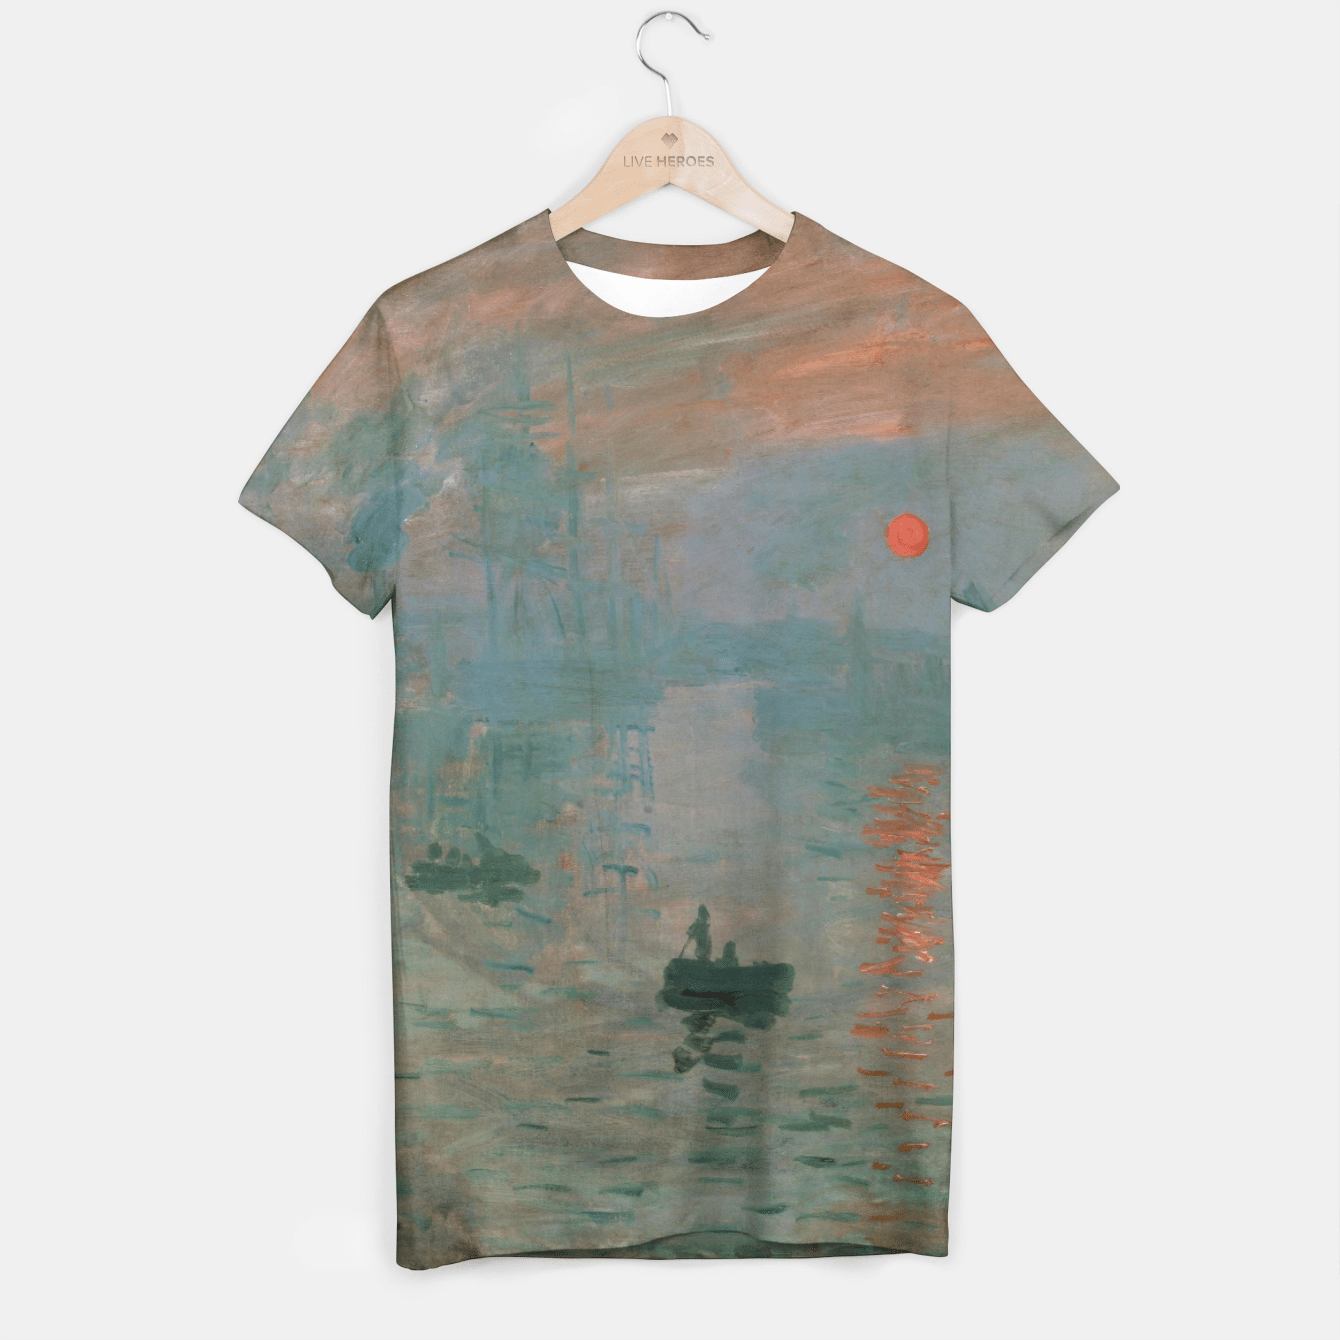 iMPRESSiON, SUNRiSE BY CLAUDE MONET T-shirt, Live Heroes